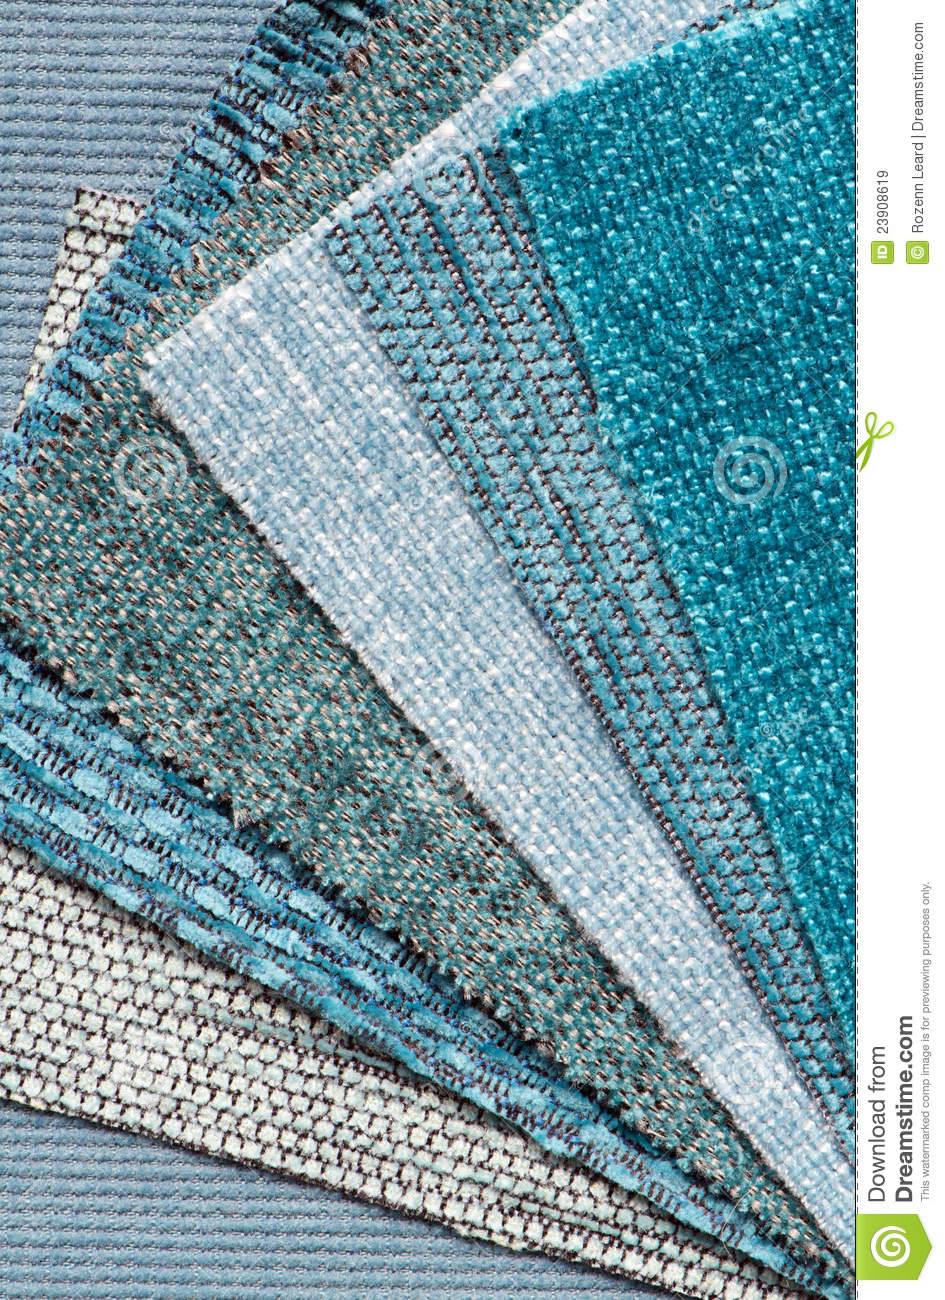 Sofa Fabric Samples Selecting Fabric Stock Image Image Of Textile Samples 23908619